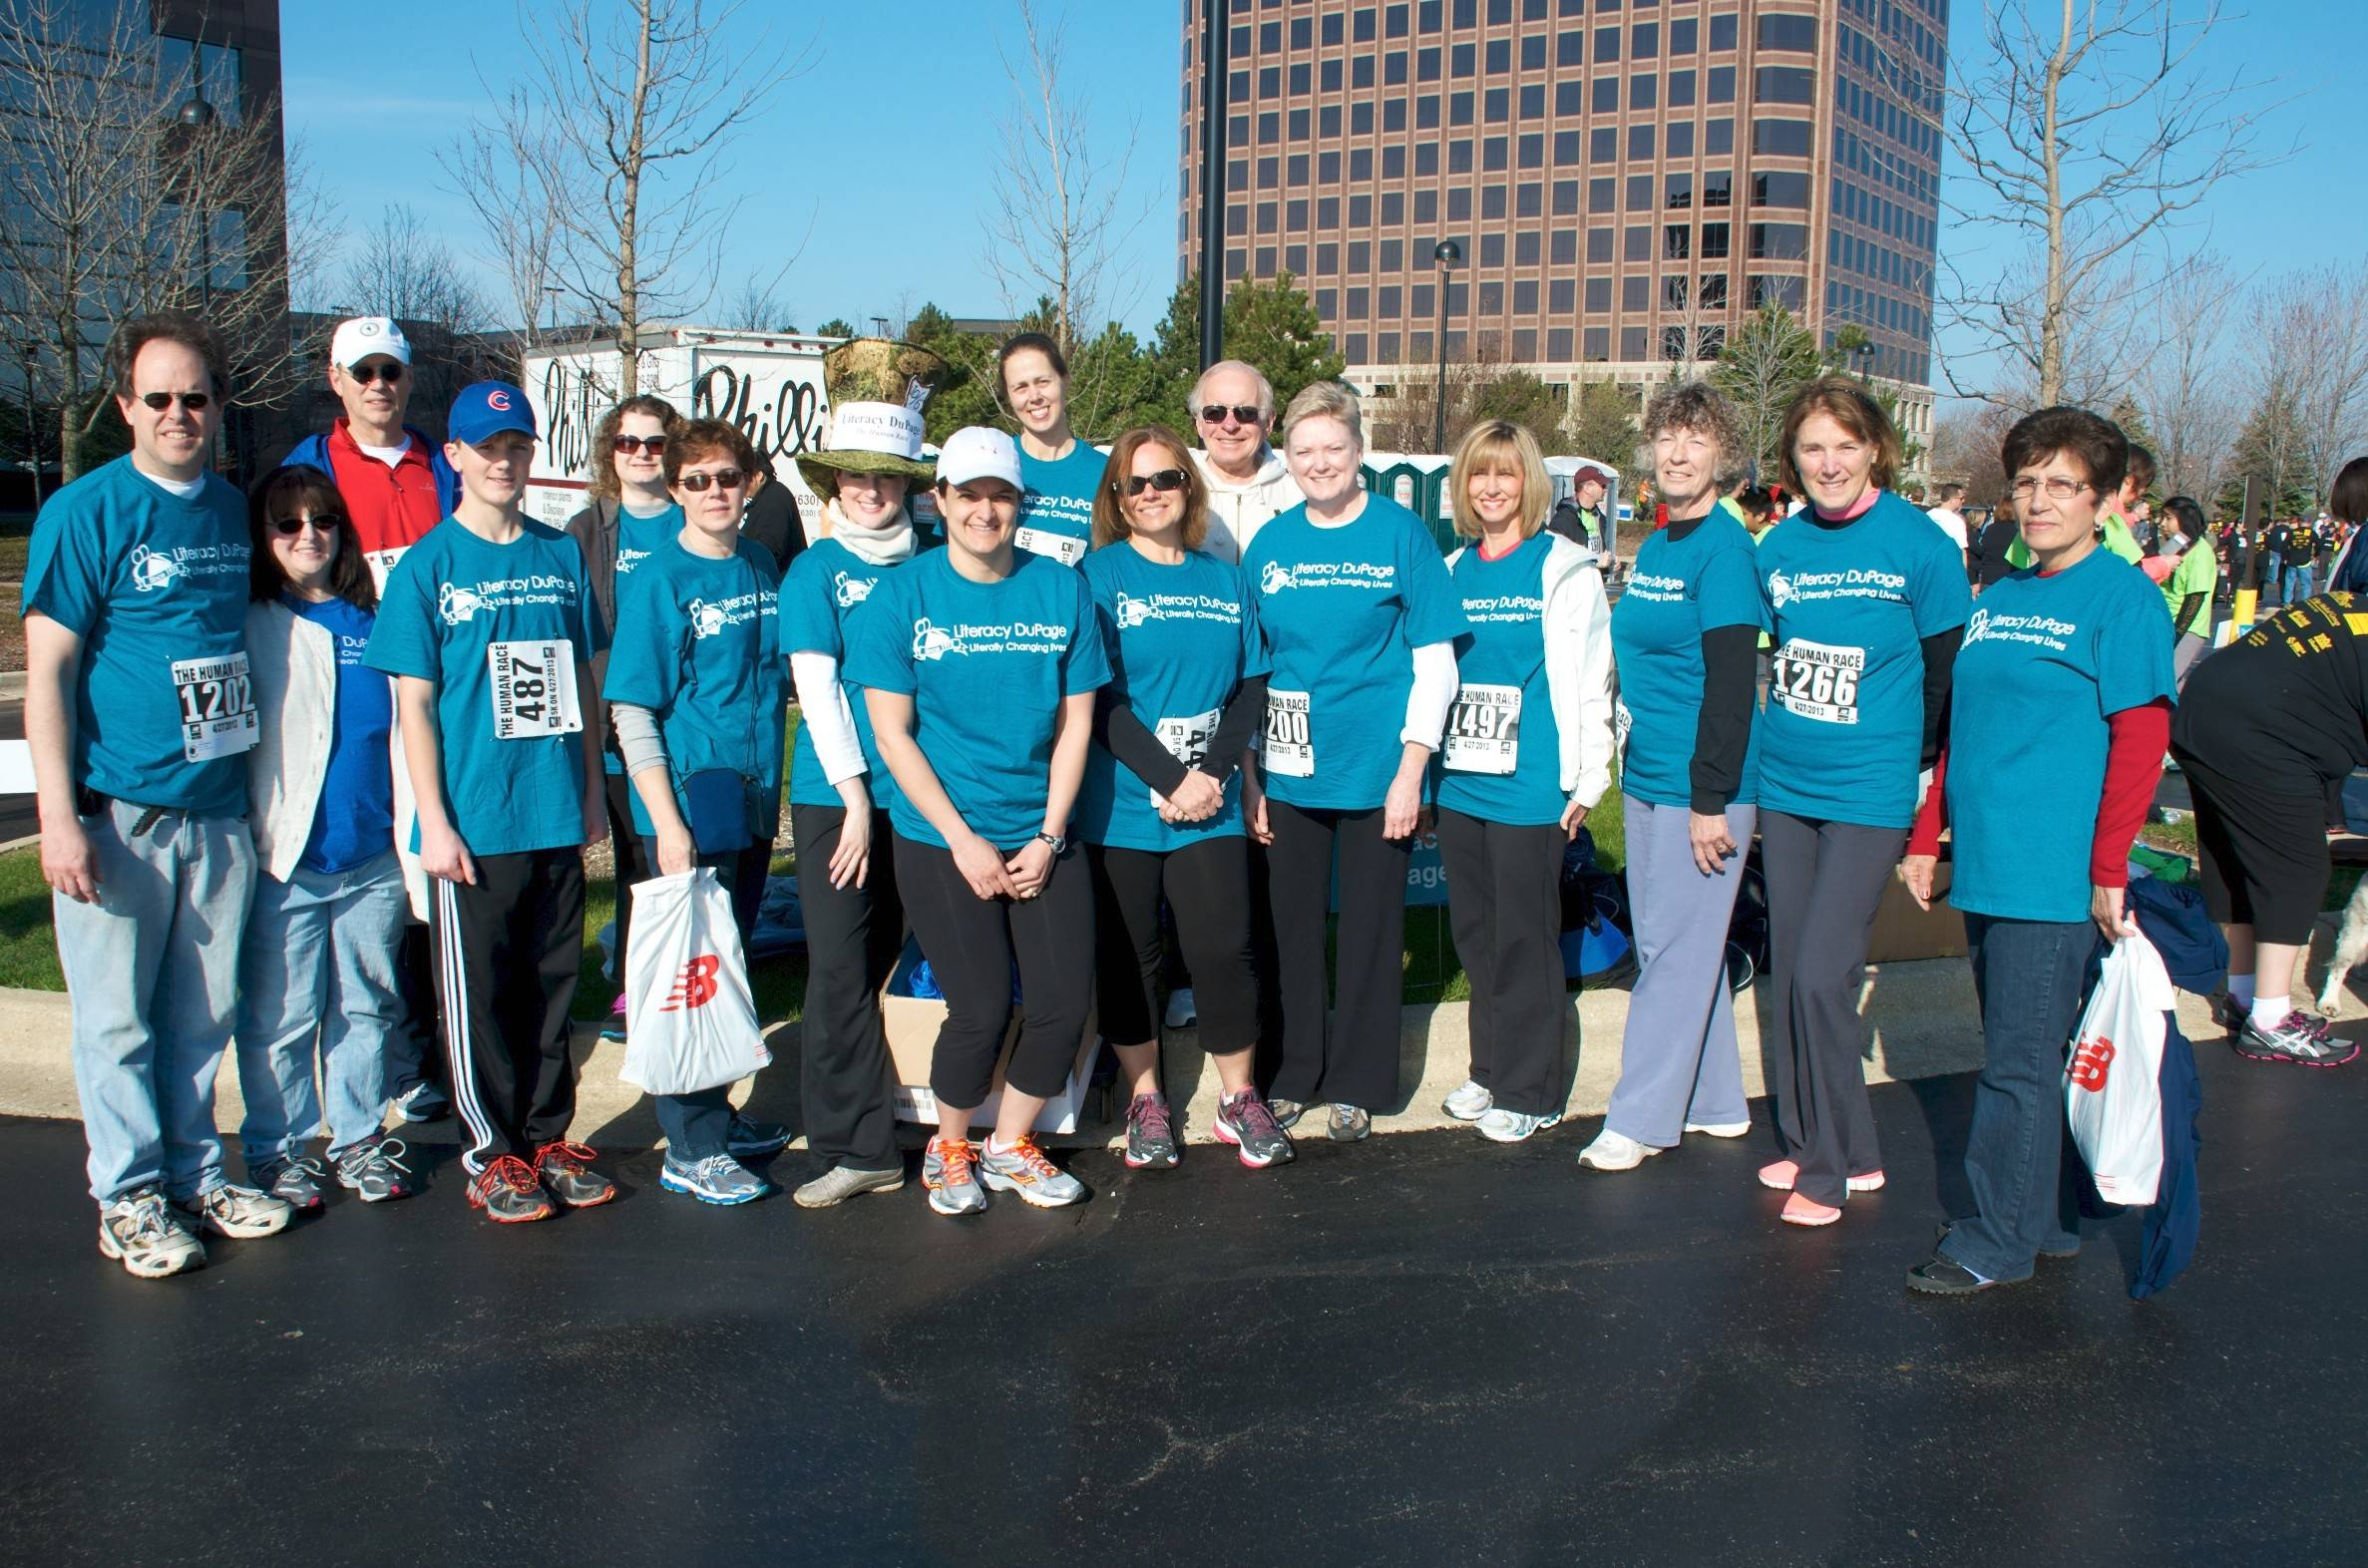 Linda Kulikowski of Woodridge, third from right, is returning to the Human Race in 2014 to support Literacy DuPage. She serves as a volunteer and tutor for the organization.